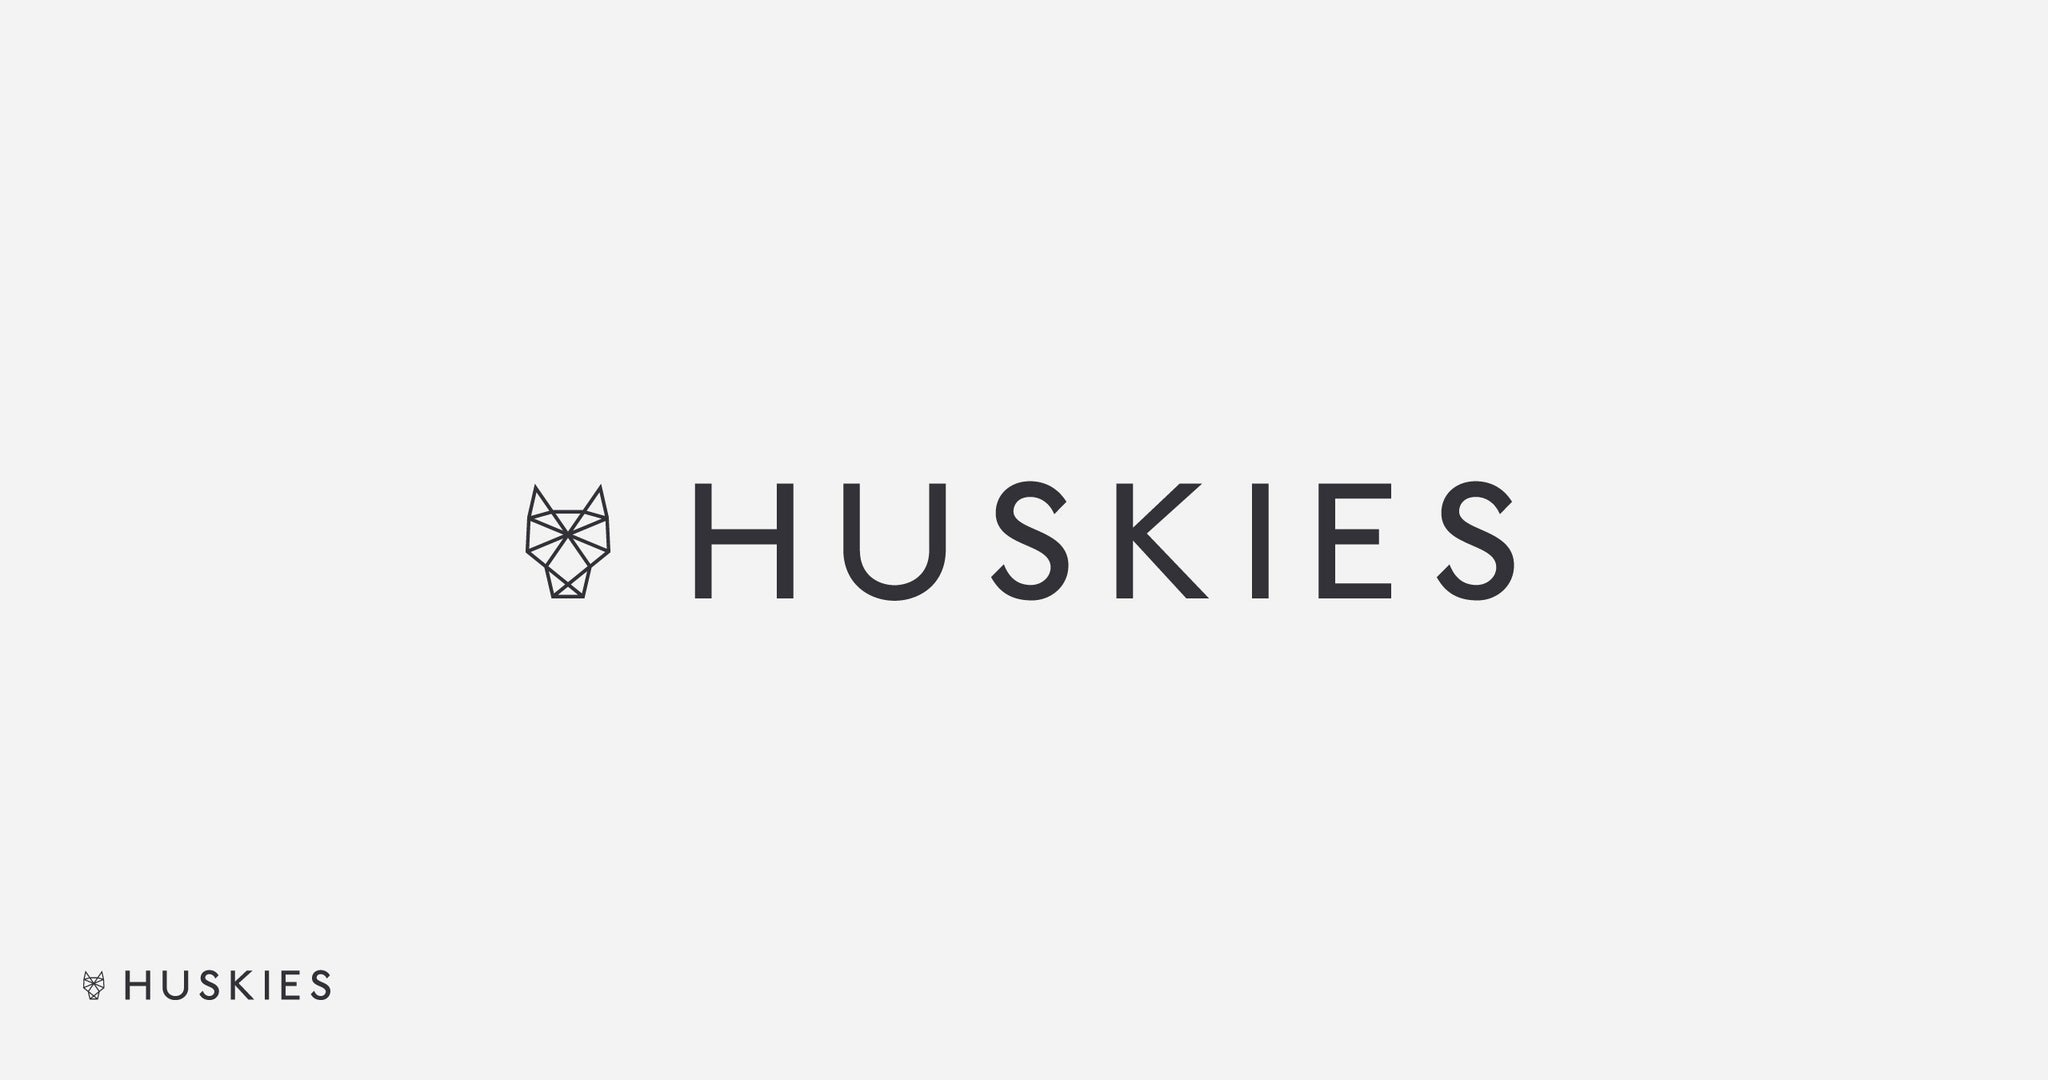 huskies design